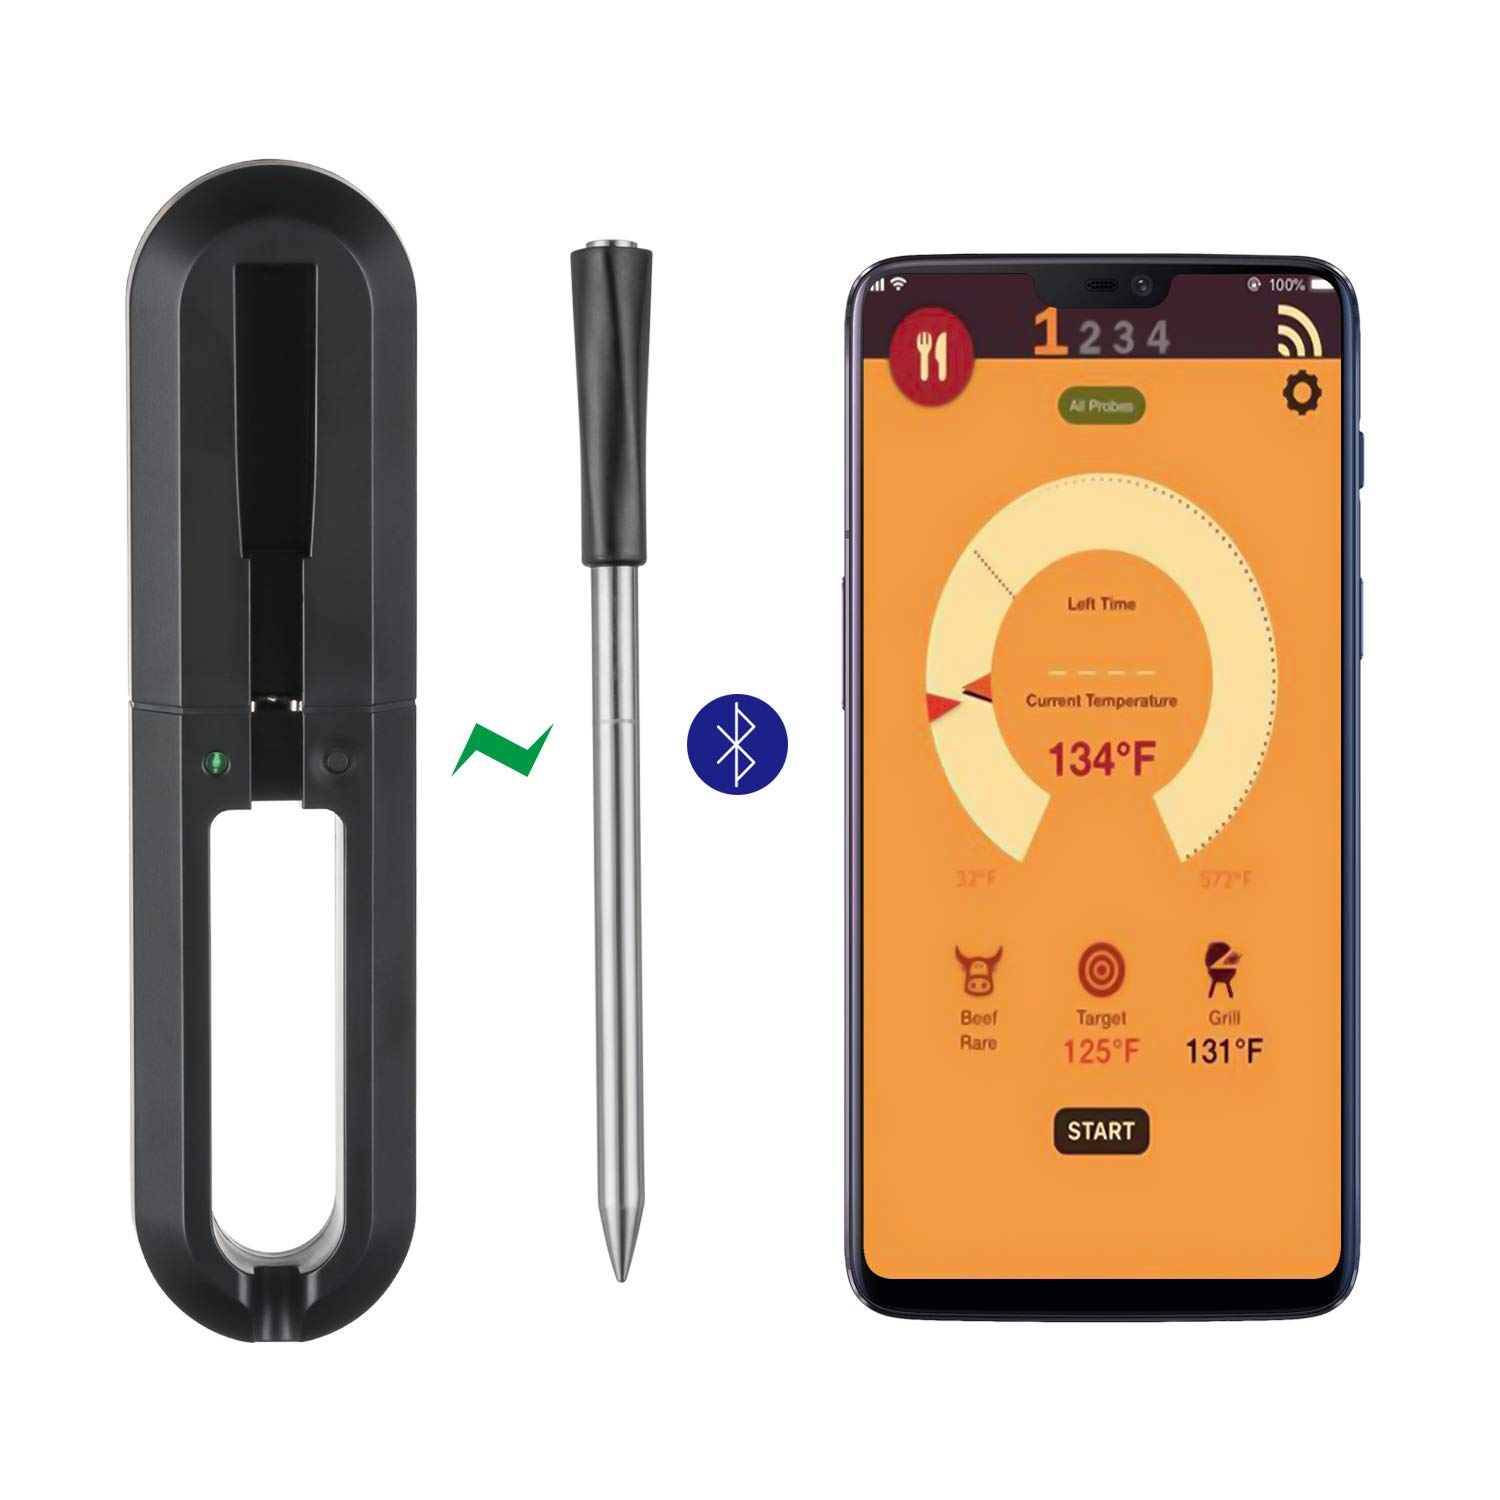 gootrades Wireless Meat Thermometer - 100ft Range True Smart Bluetooth Connectivity Flesh Thermometer for Grill Oven Rotisserie BBQ Candy Kitchen Food